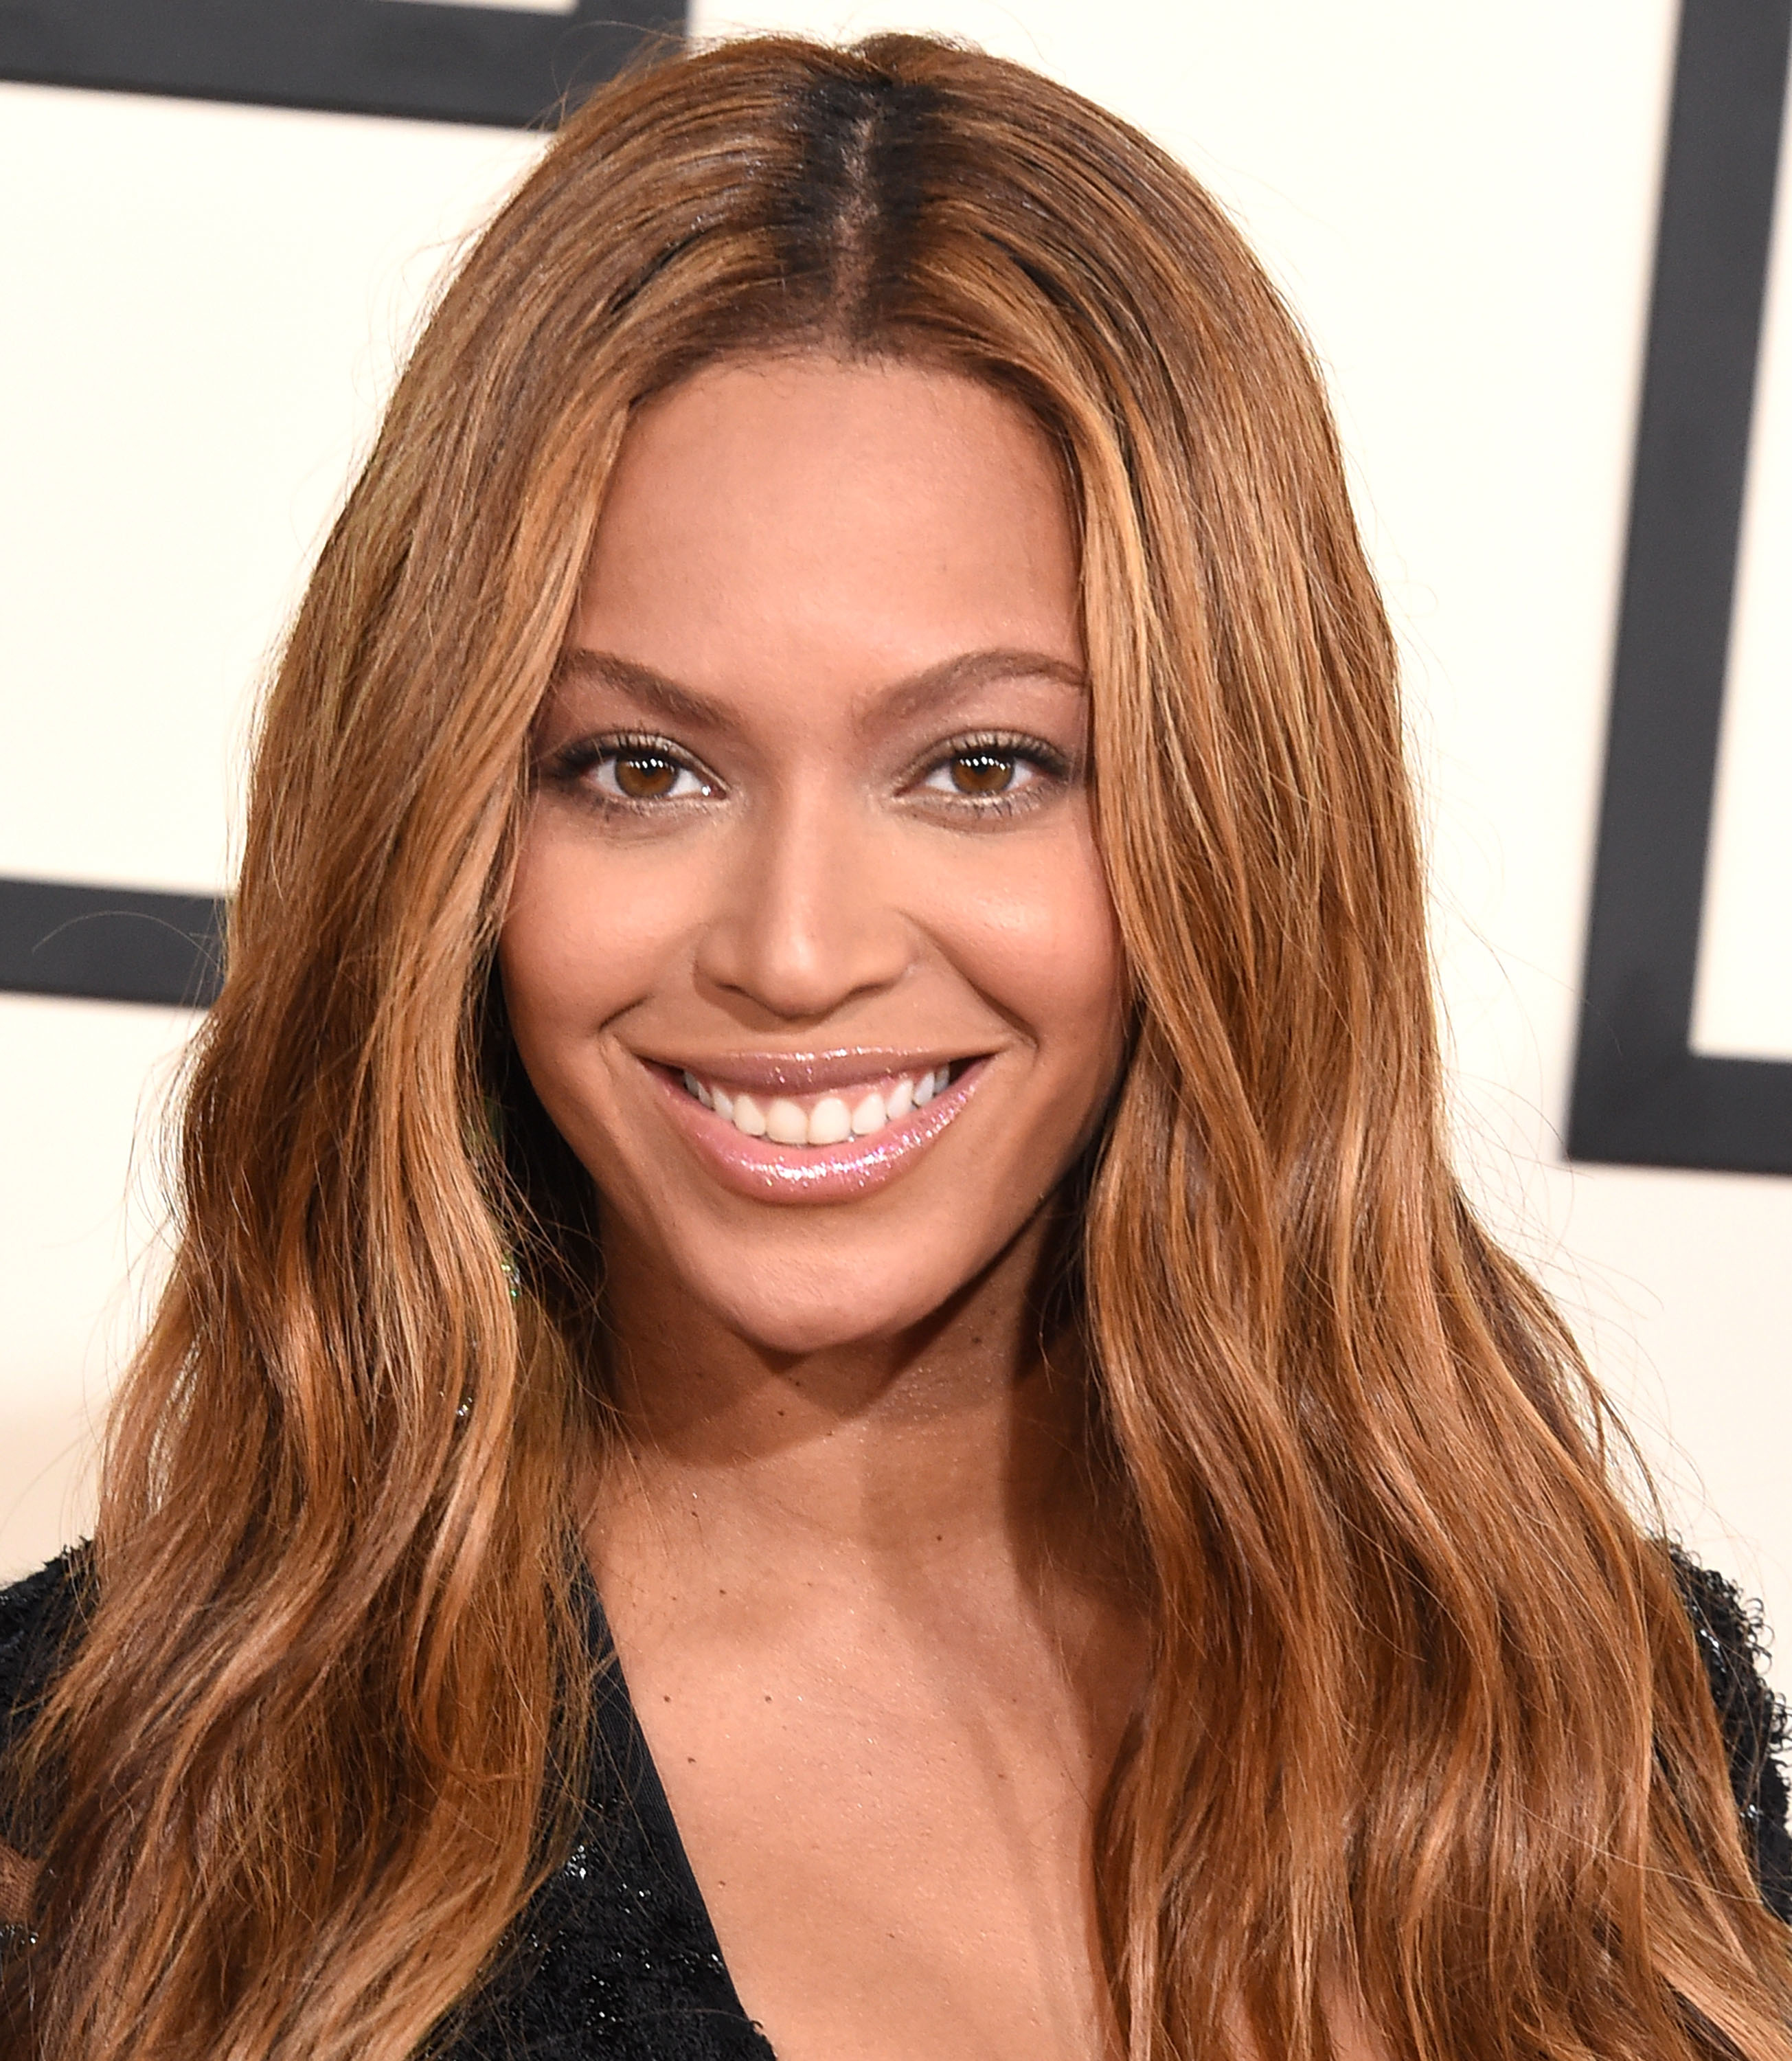 Beyonce arrives at the The 57th Annual GRAMMY Awards on February 8, 2015 in Los Angeles, California.